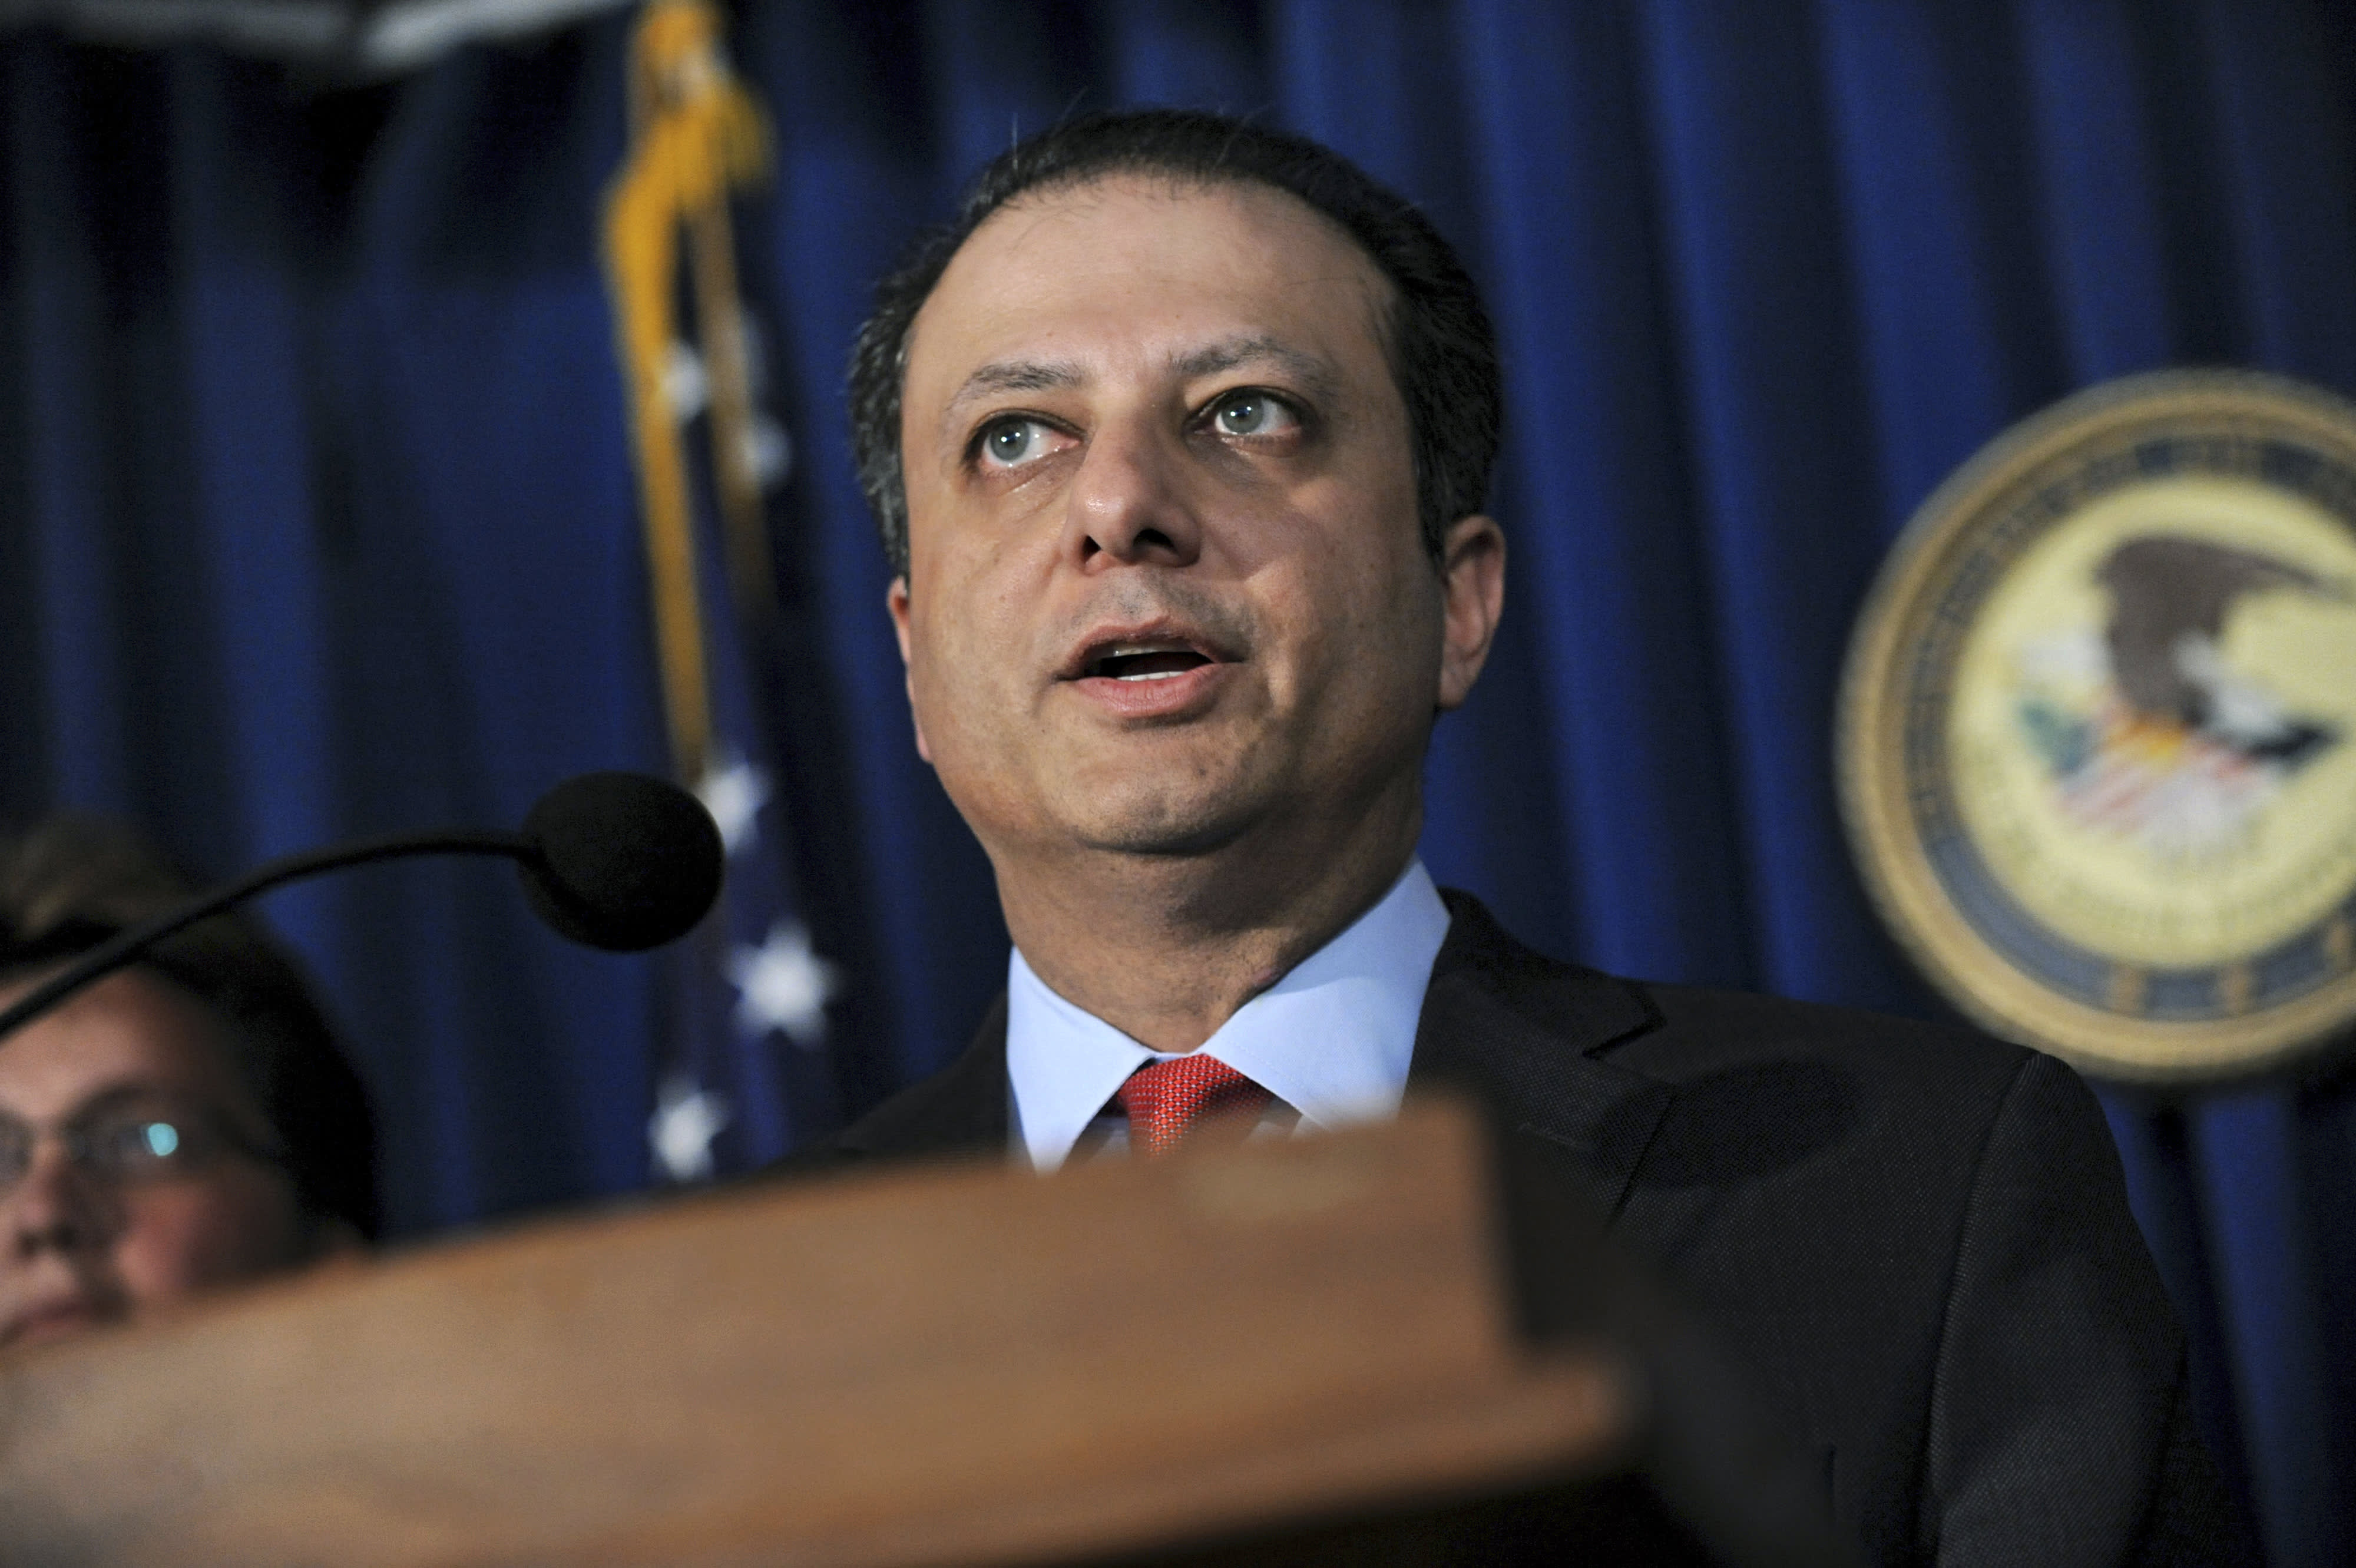 We found a banking analyst who thinks Preet Bharara 'should be hung by his heels'